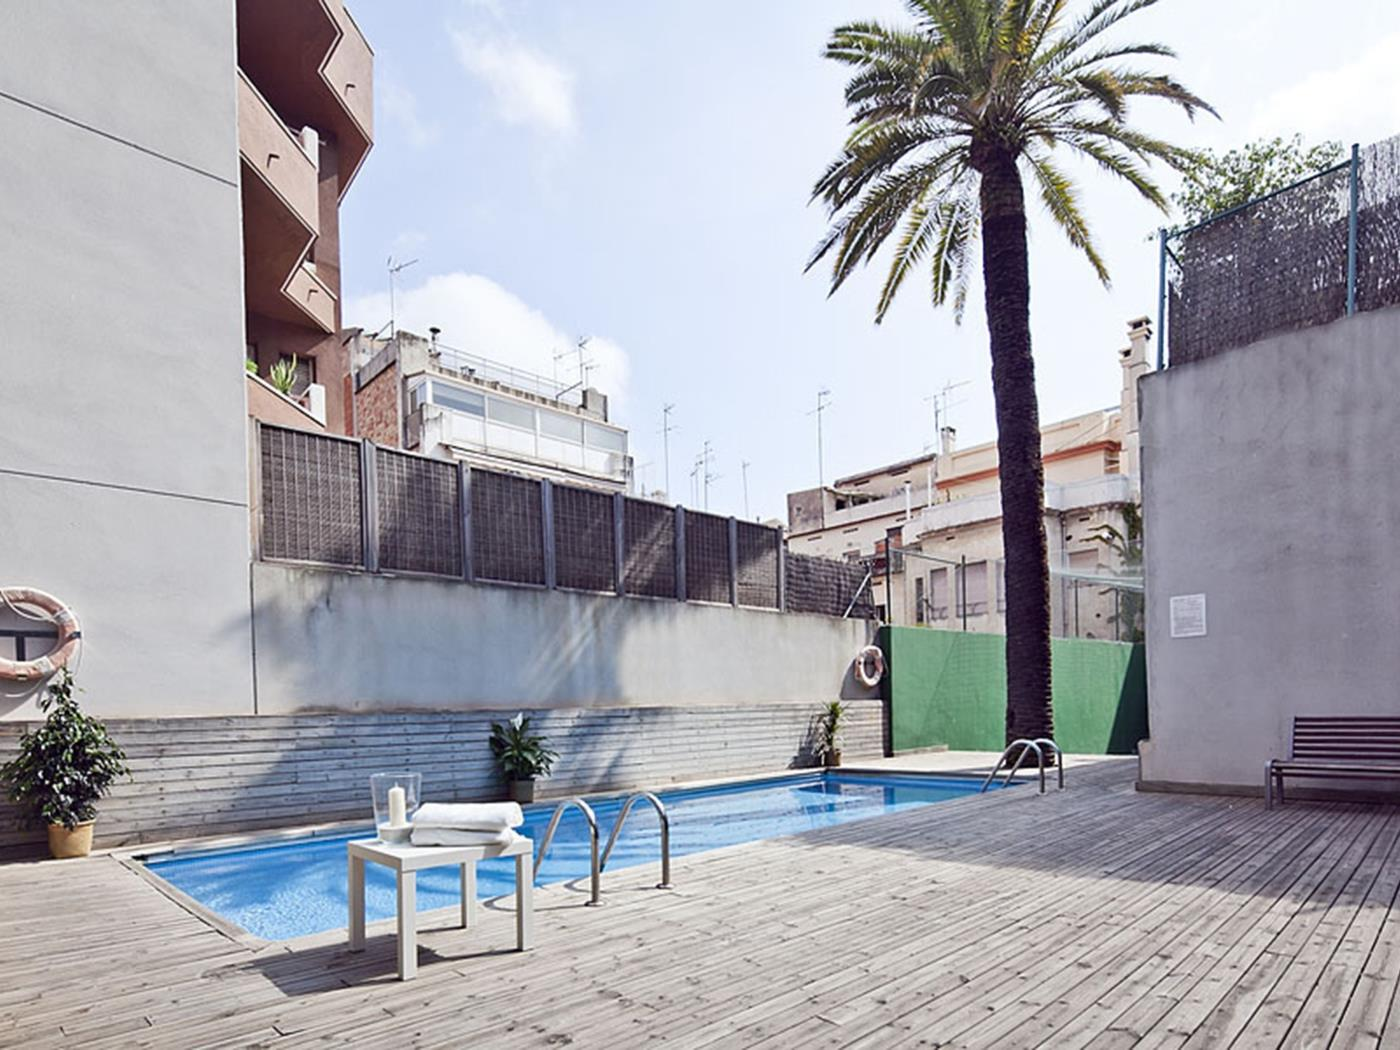 Apartment with shared swimming pool 37 I - My Space Barcelona Aпартаменты